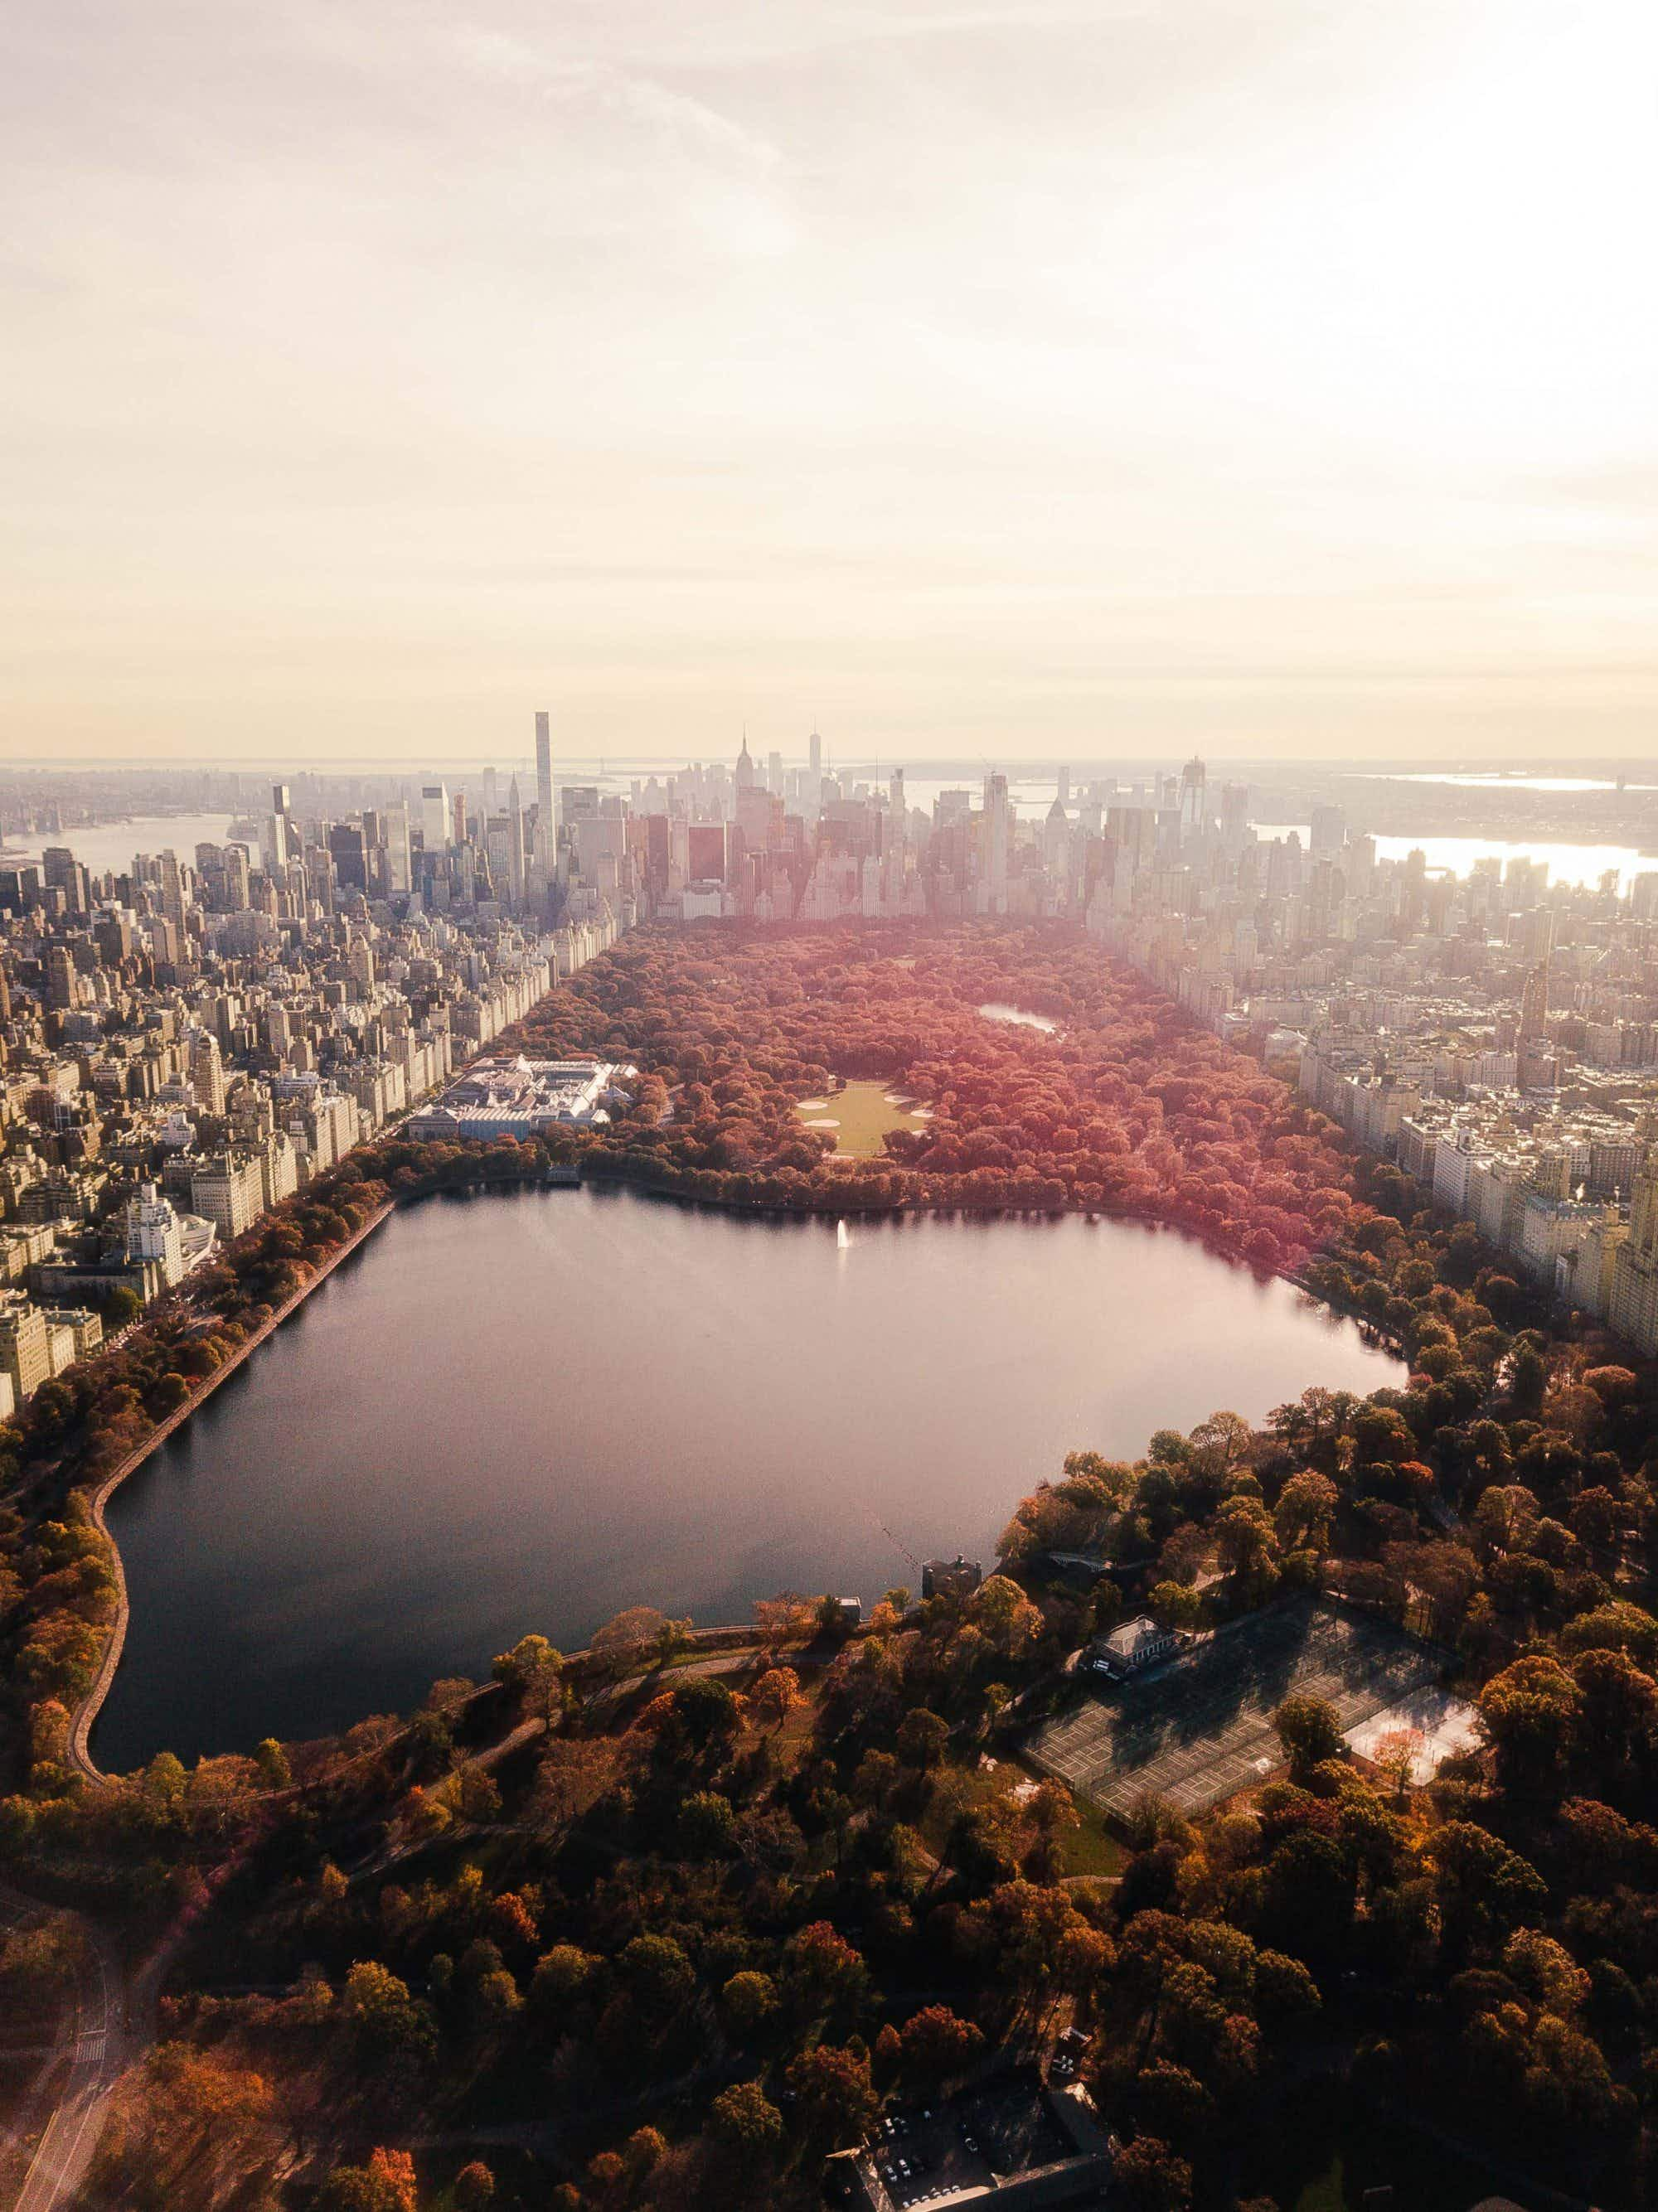 Get a new perspective on New York with these dizzy images